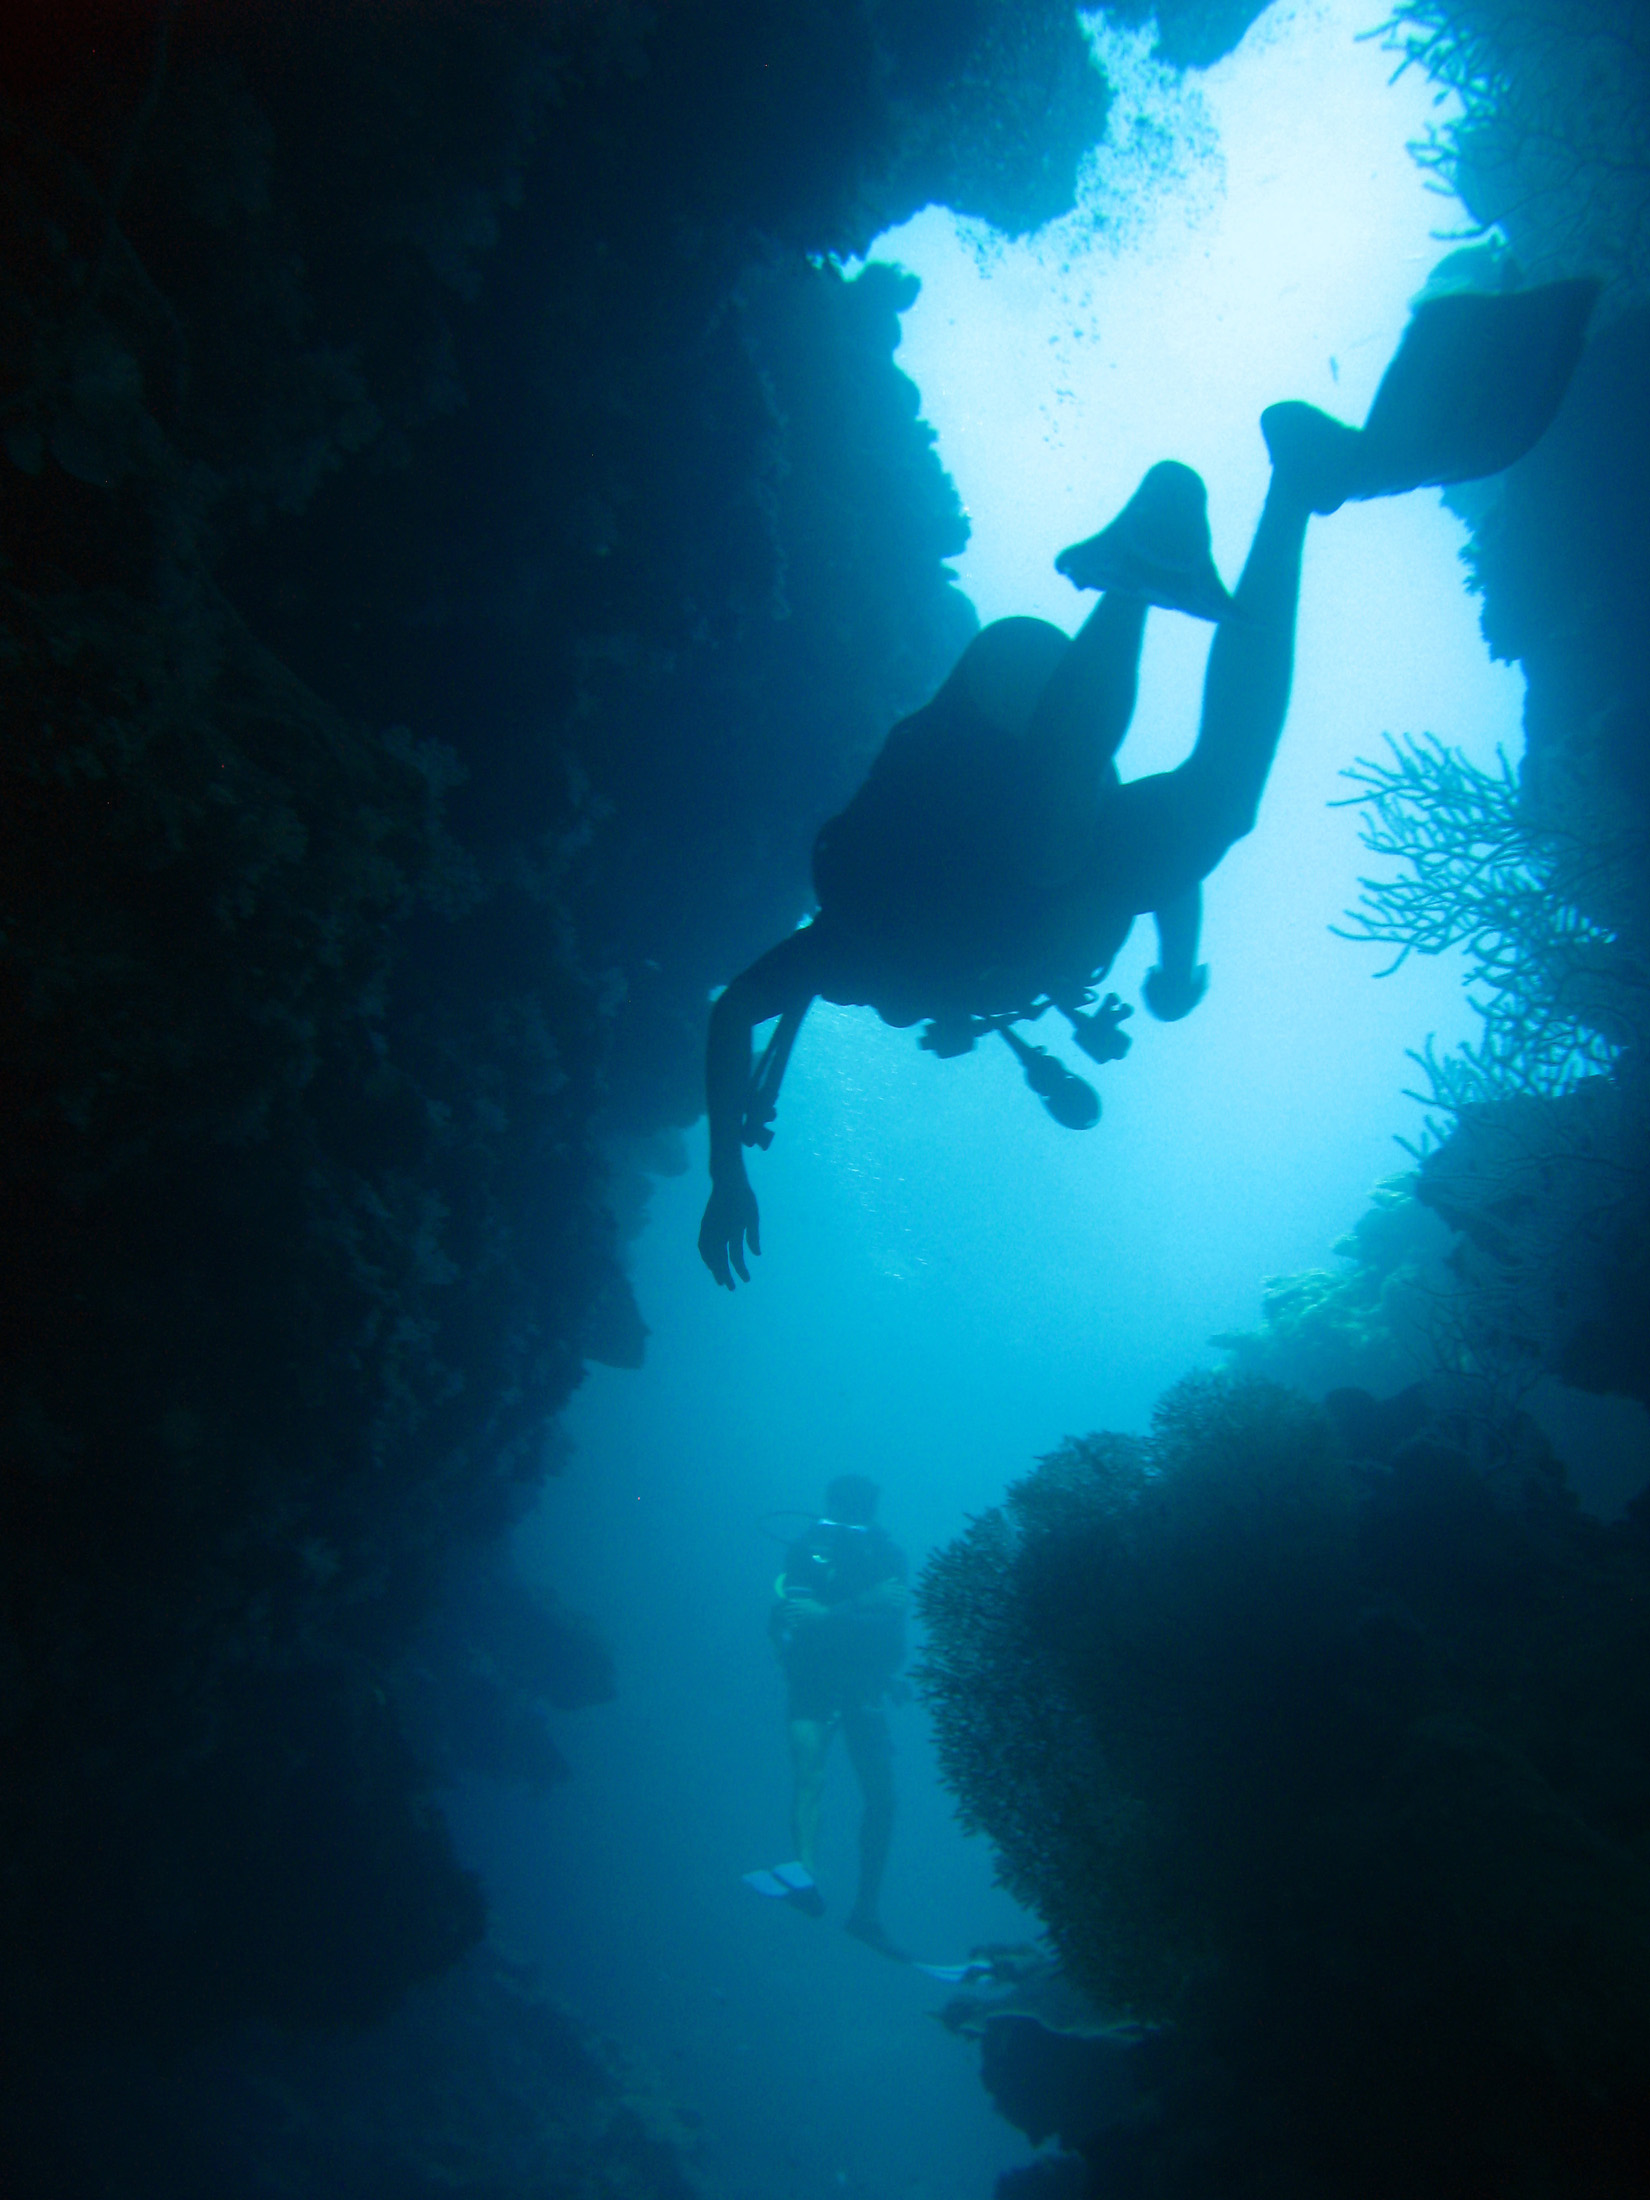 Underwater image of a scuba diver descending into a cave looking for fan corals